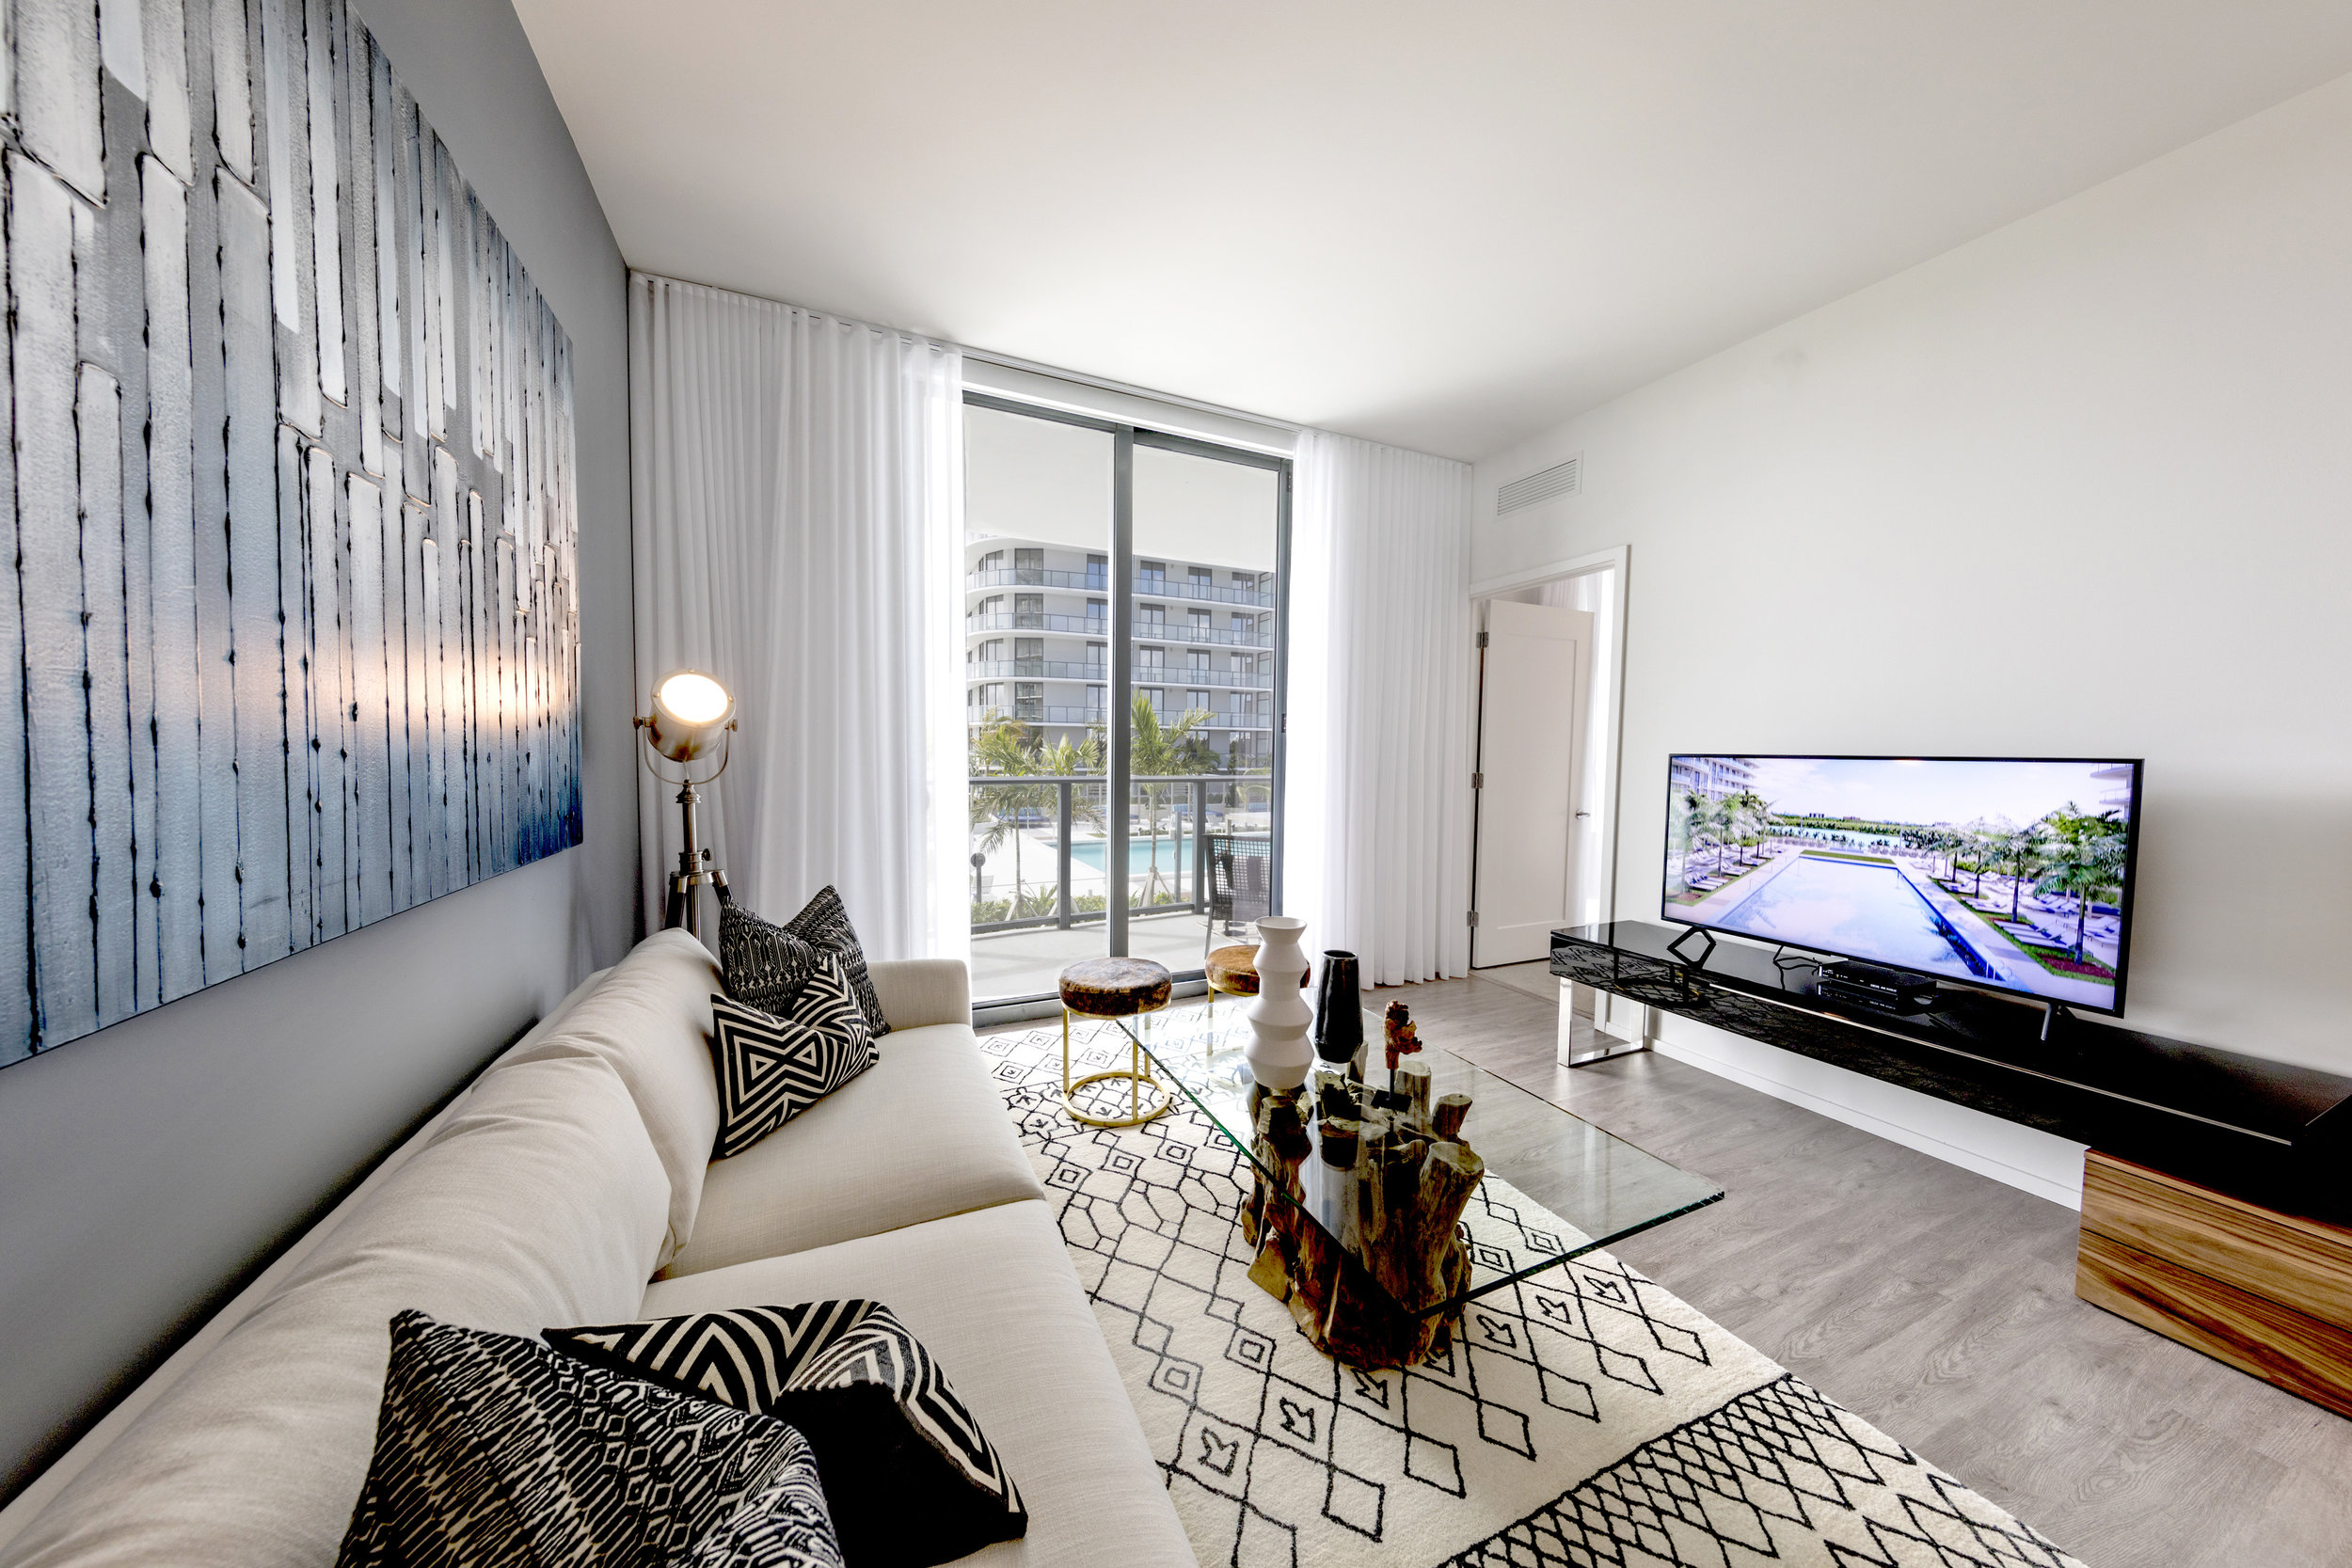 Take A First Look Inside The Shoreline At LeFrak & Turnberry's Solé Mia